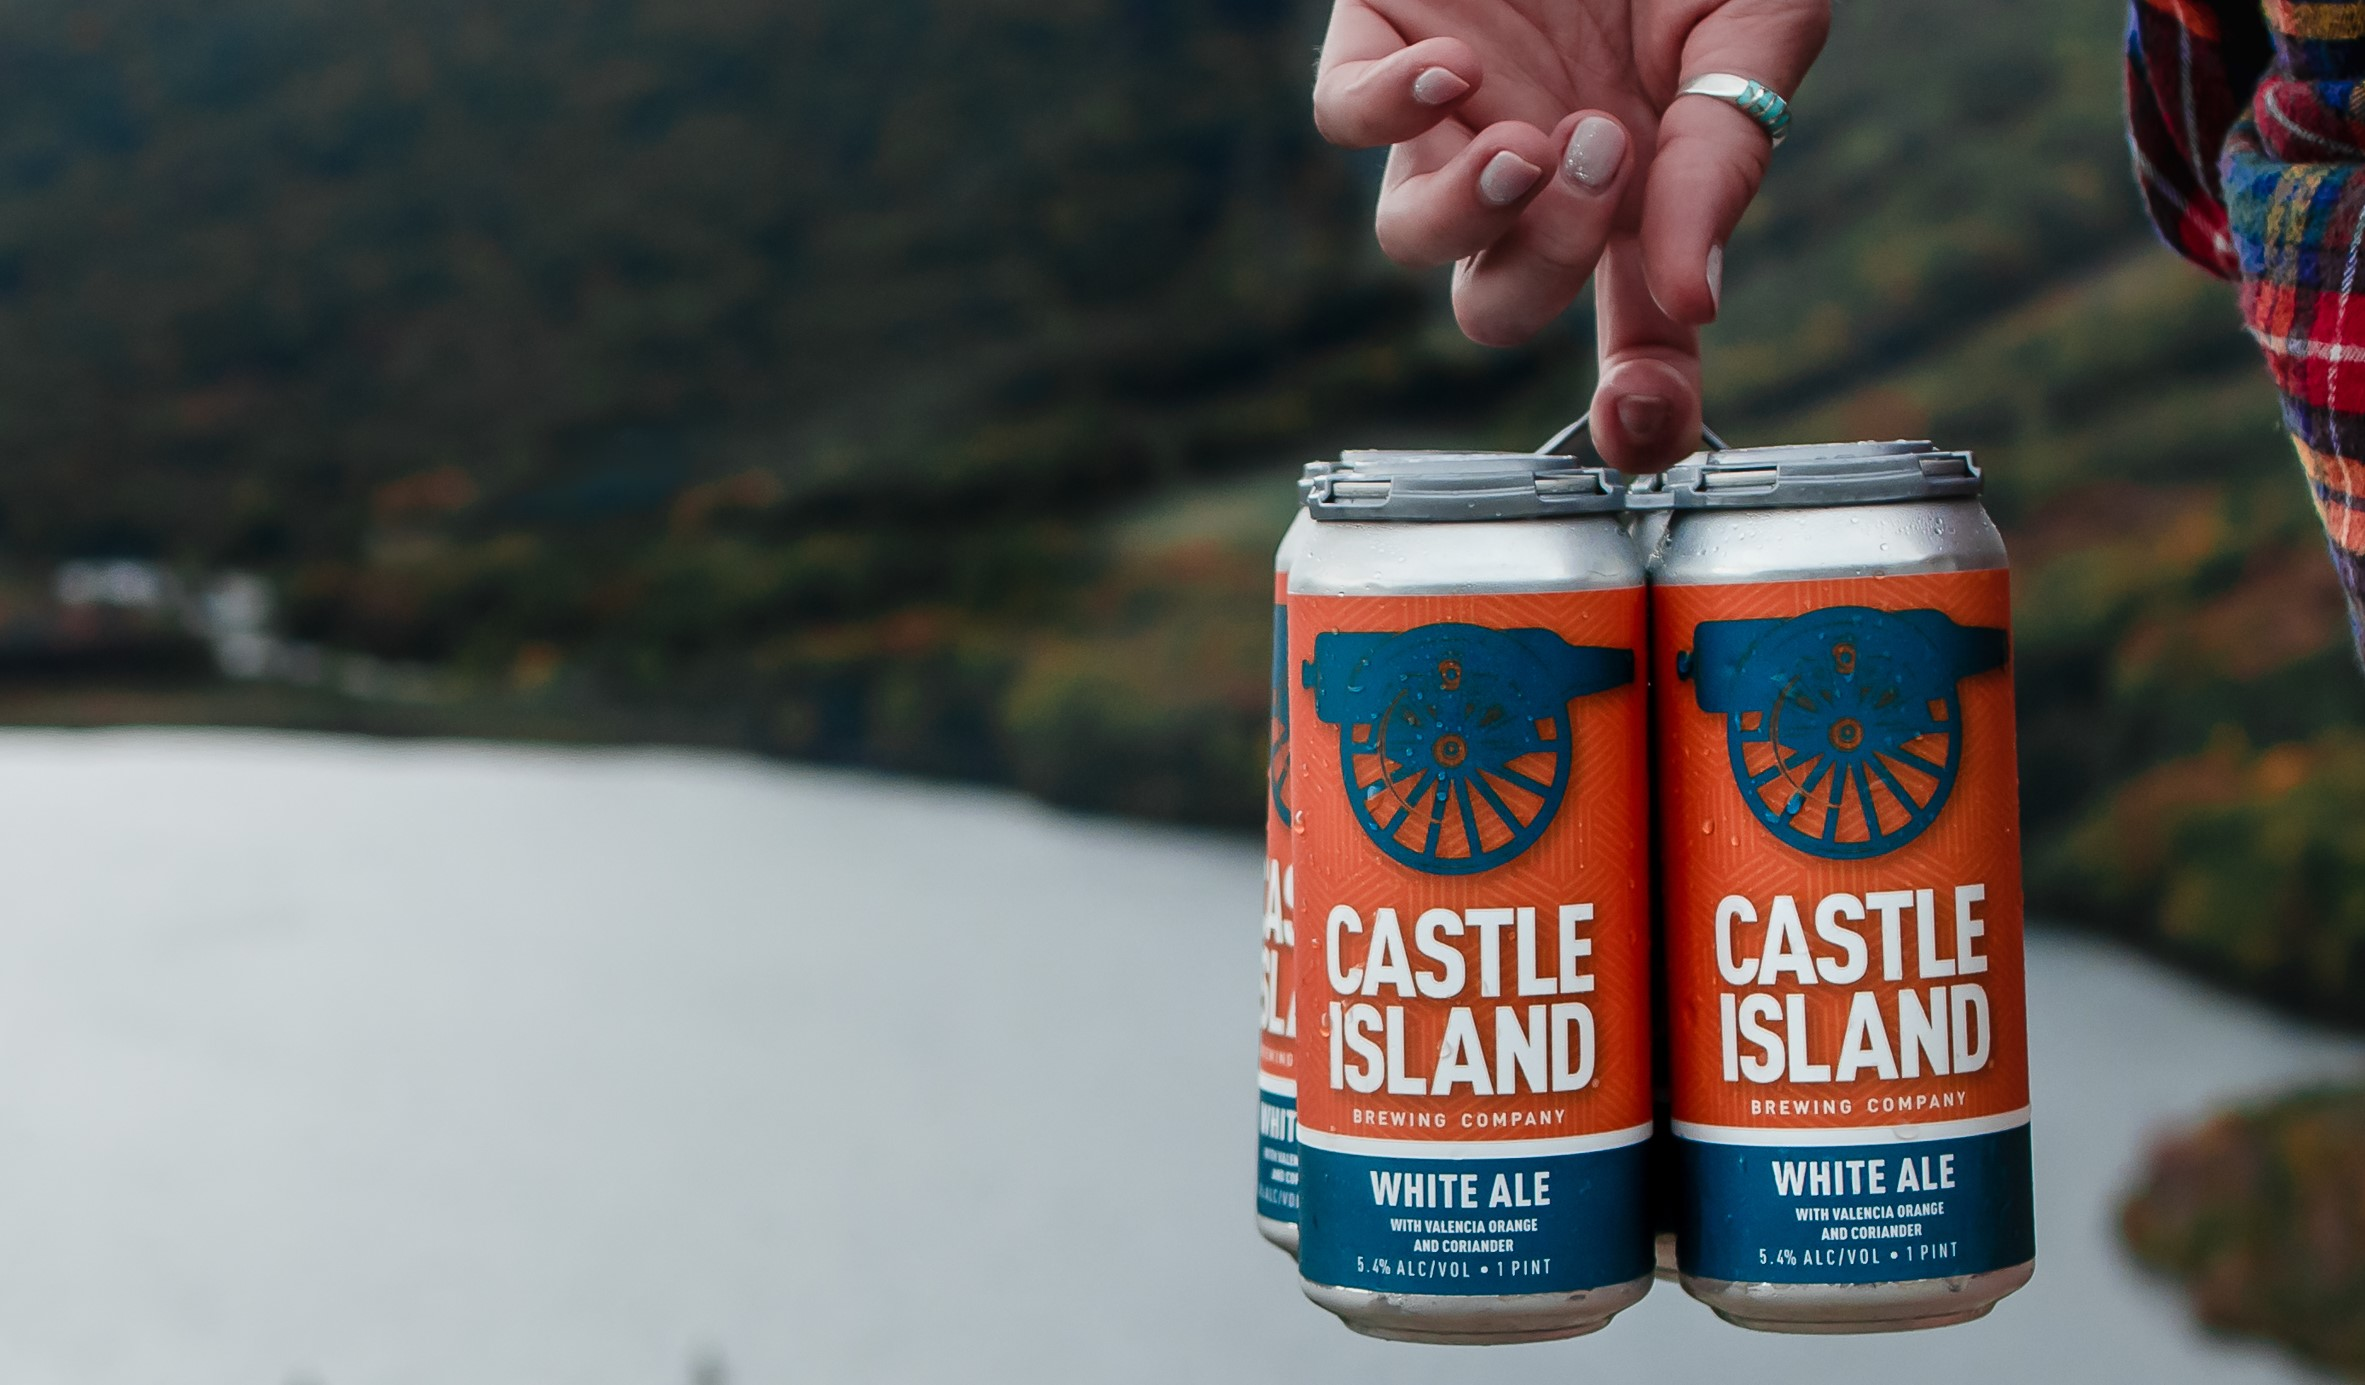 White Ale cans in nature